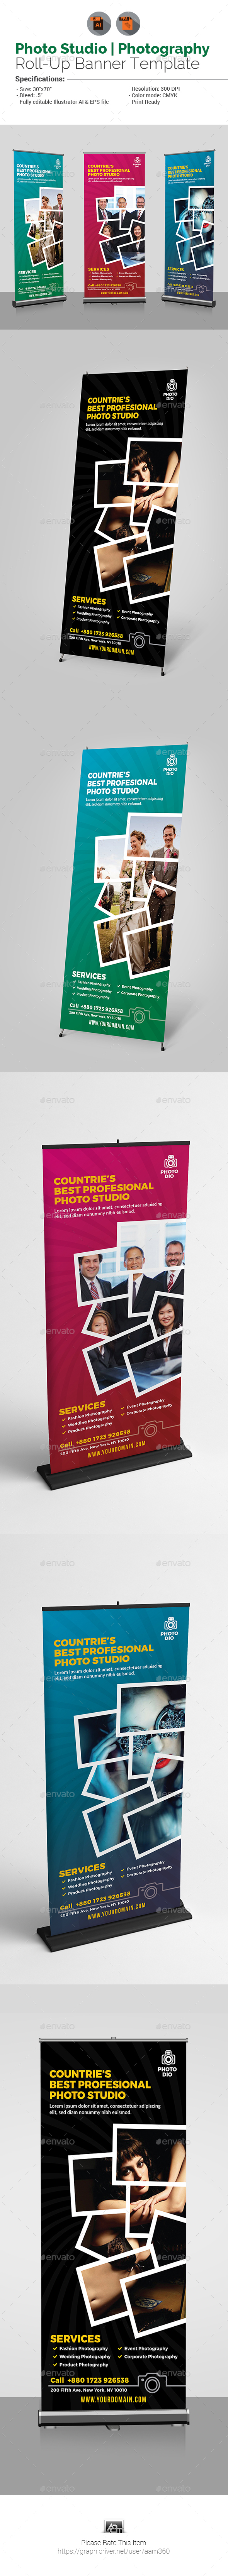 Photo Studio Flyer Roll-Up Banner - Signage Print Templates